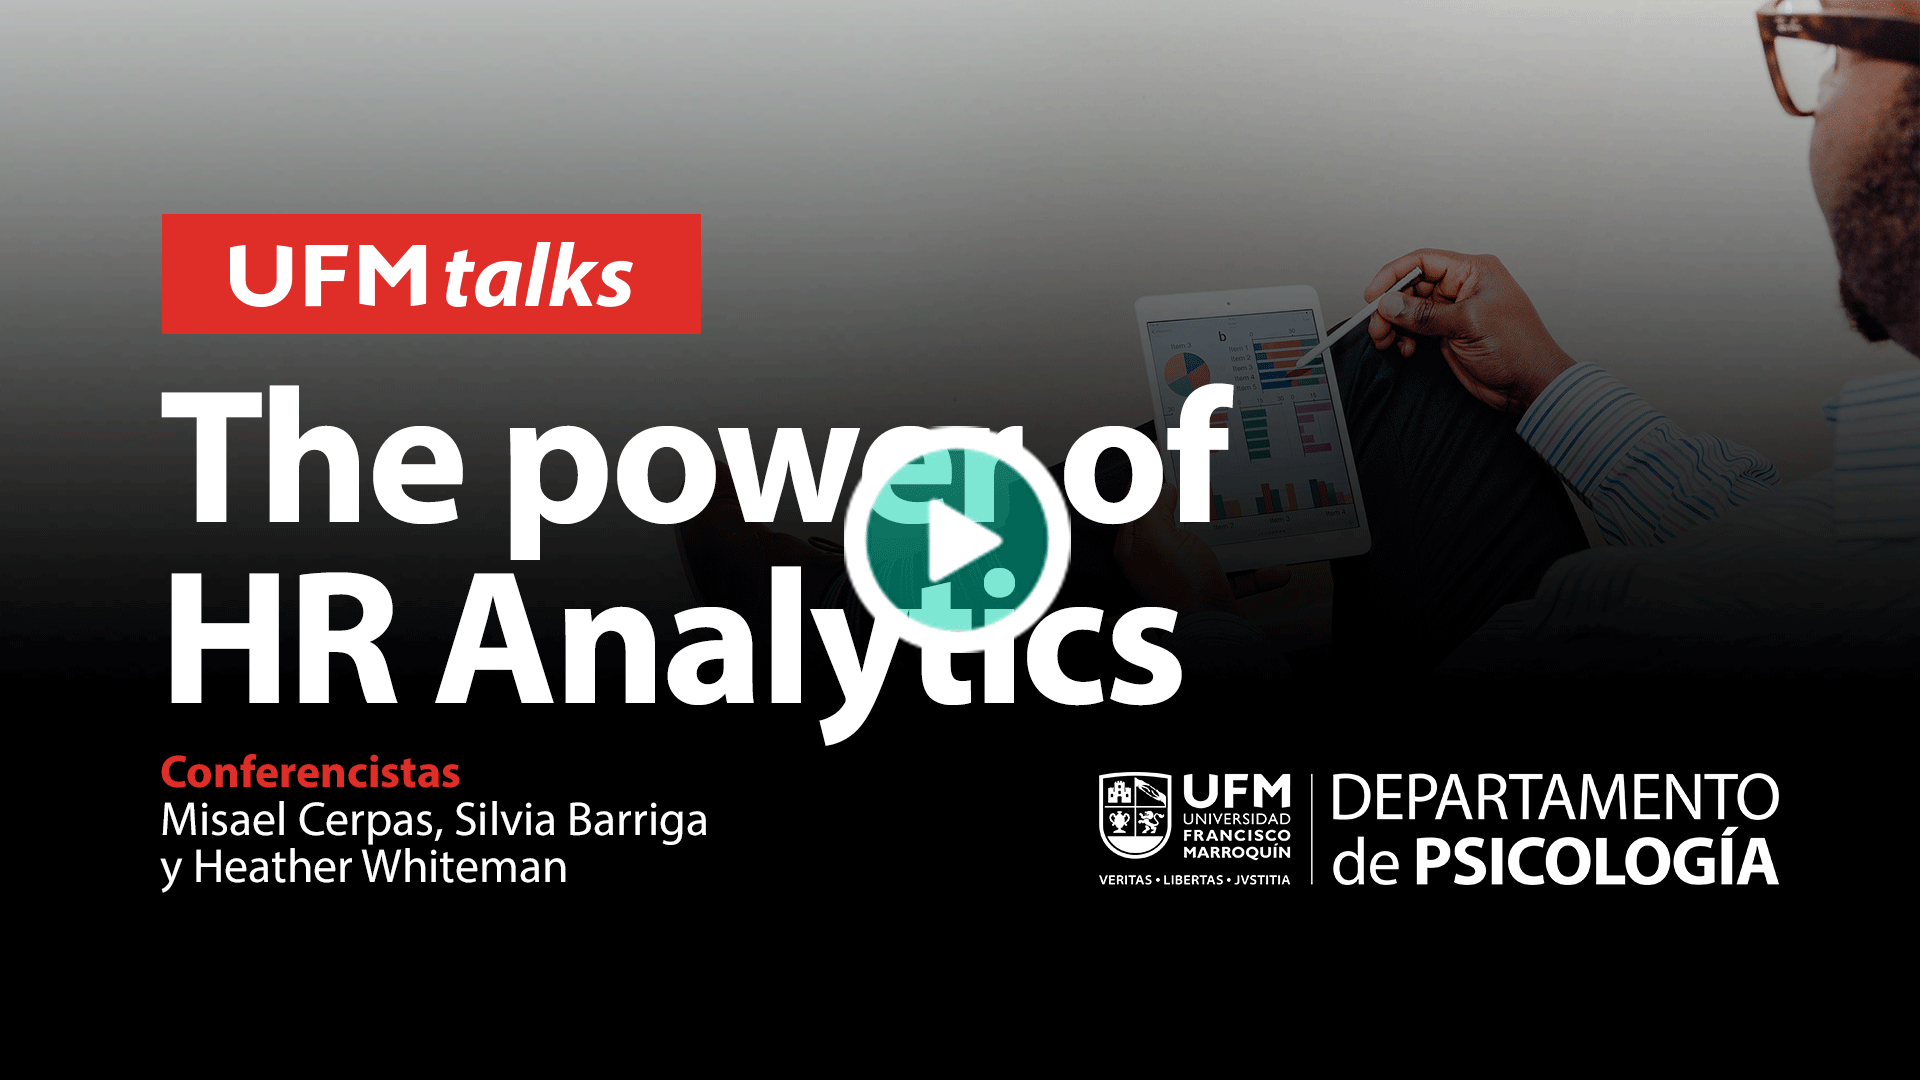 20201006_semanapsicologia_The-power-of-HR-Analytics--Semana-de-psicología--UFM-TALKS